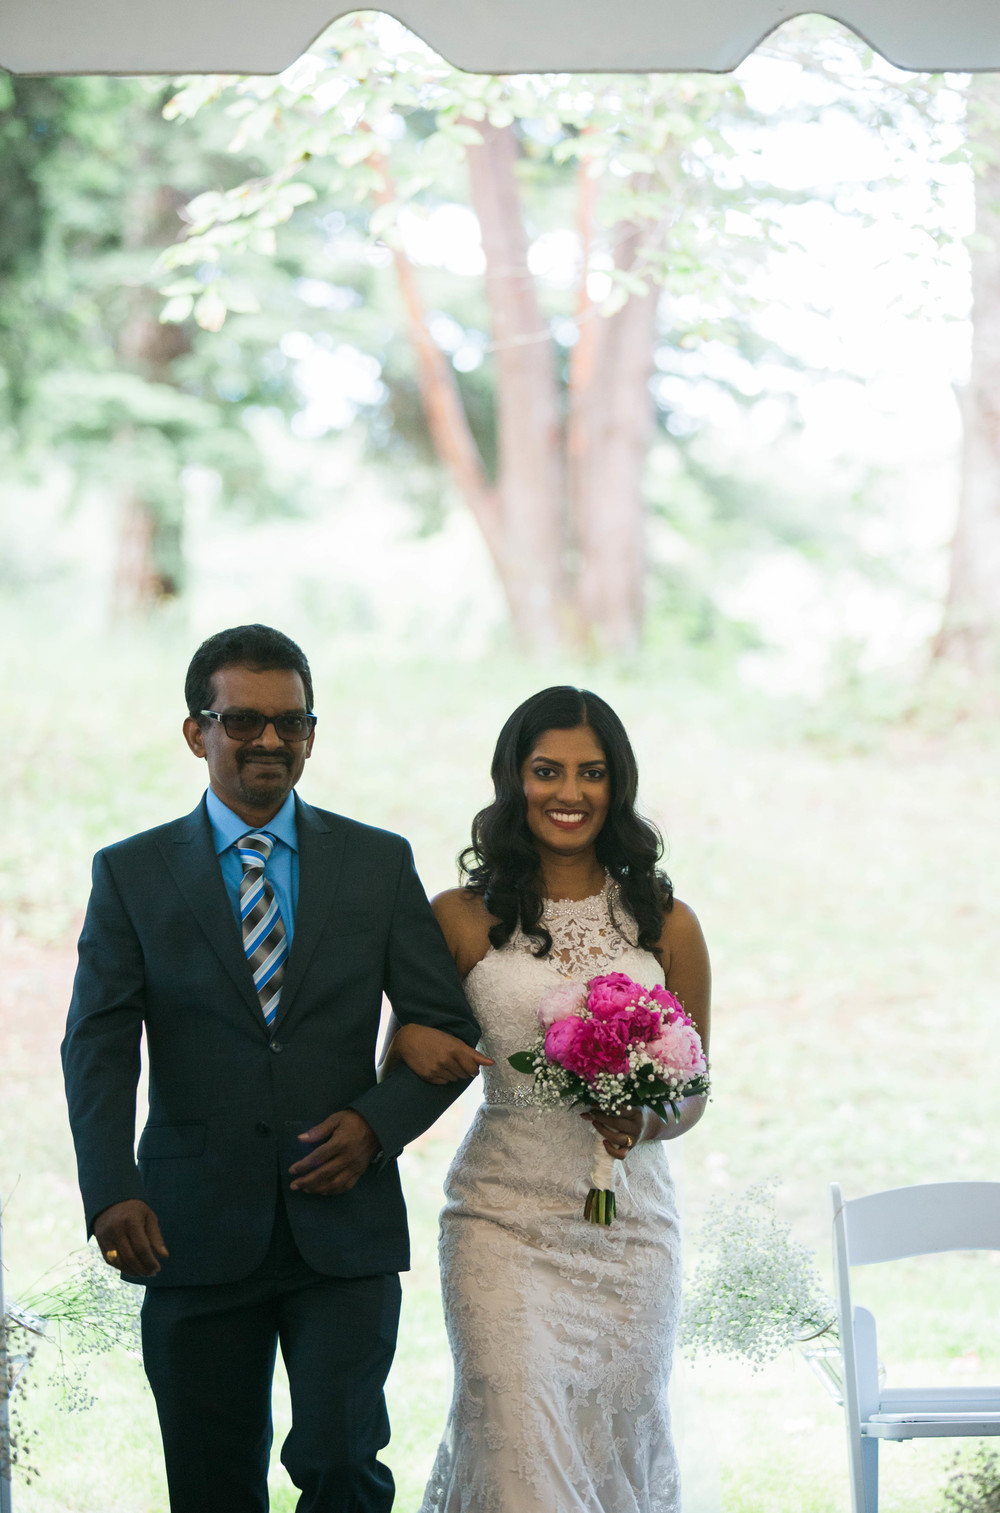 Hima+Dan_Wedding_Seattle+Couple_Kingston_6112016_1708.jpg